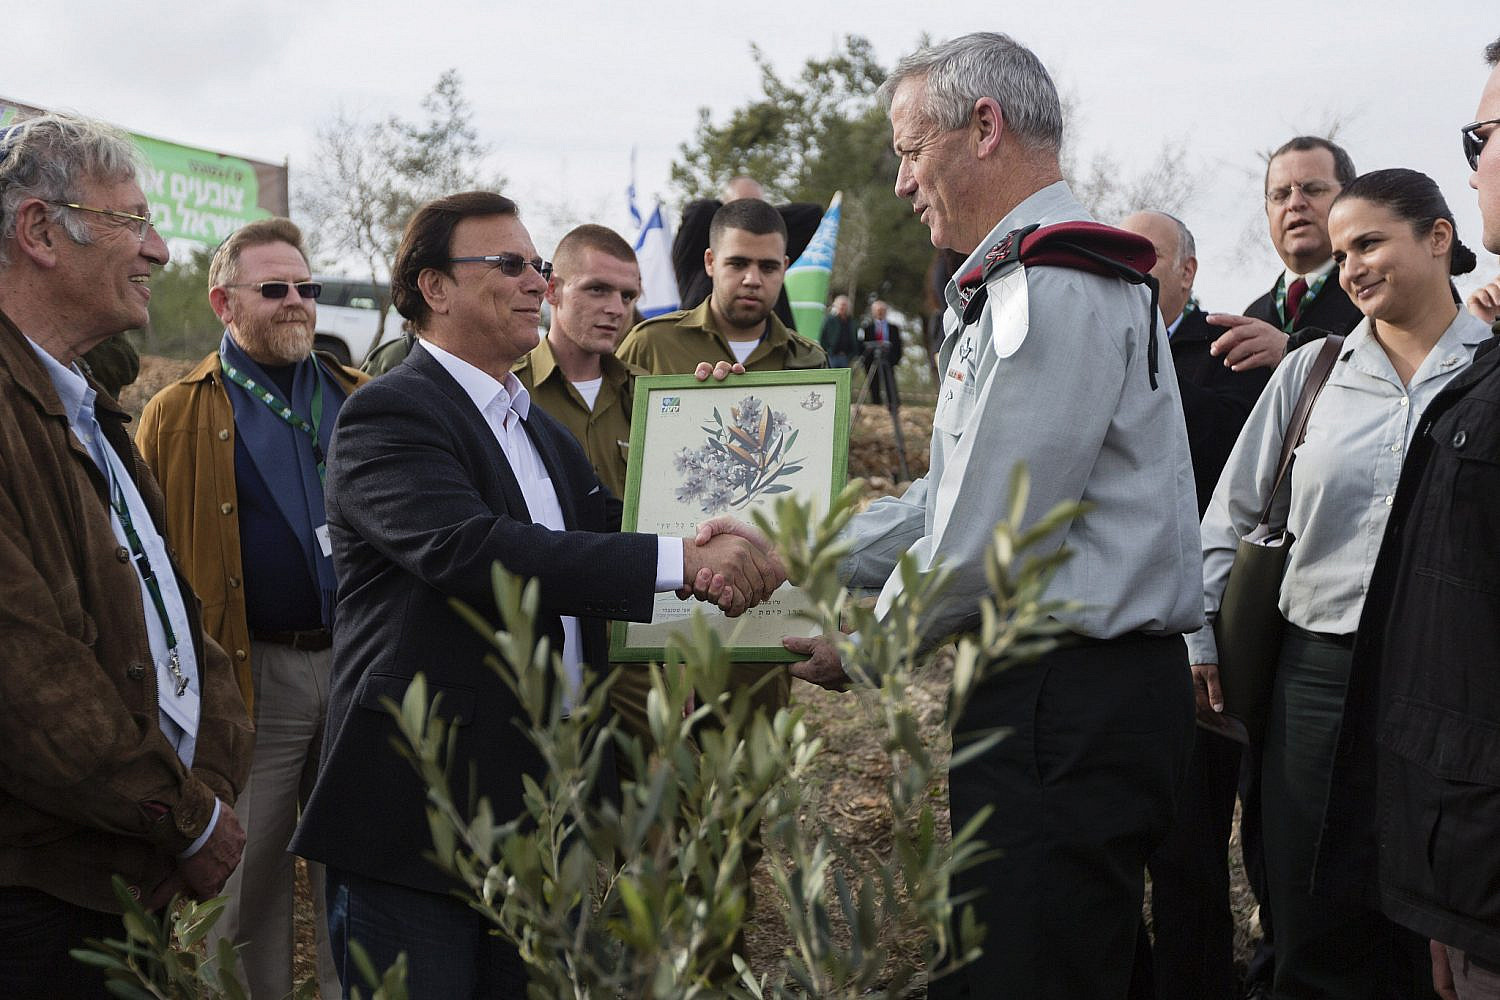 Then-IDF Chief of Staff, Benny Gantz (R), receives a certificate from Chairman of the Jewish National Fund, Effy Shtenzler, after planting a tree at the new General Staff Forum and IDF forest in the Sataf area near Jerusalem, Jan. 27, 2014. (Flash90)